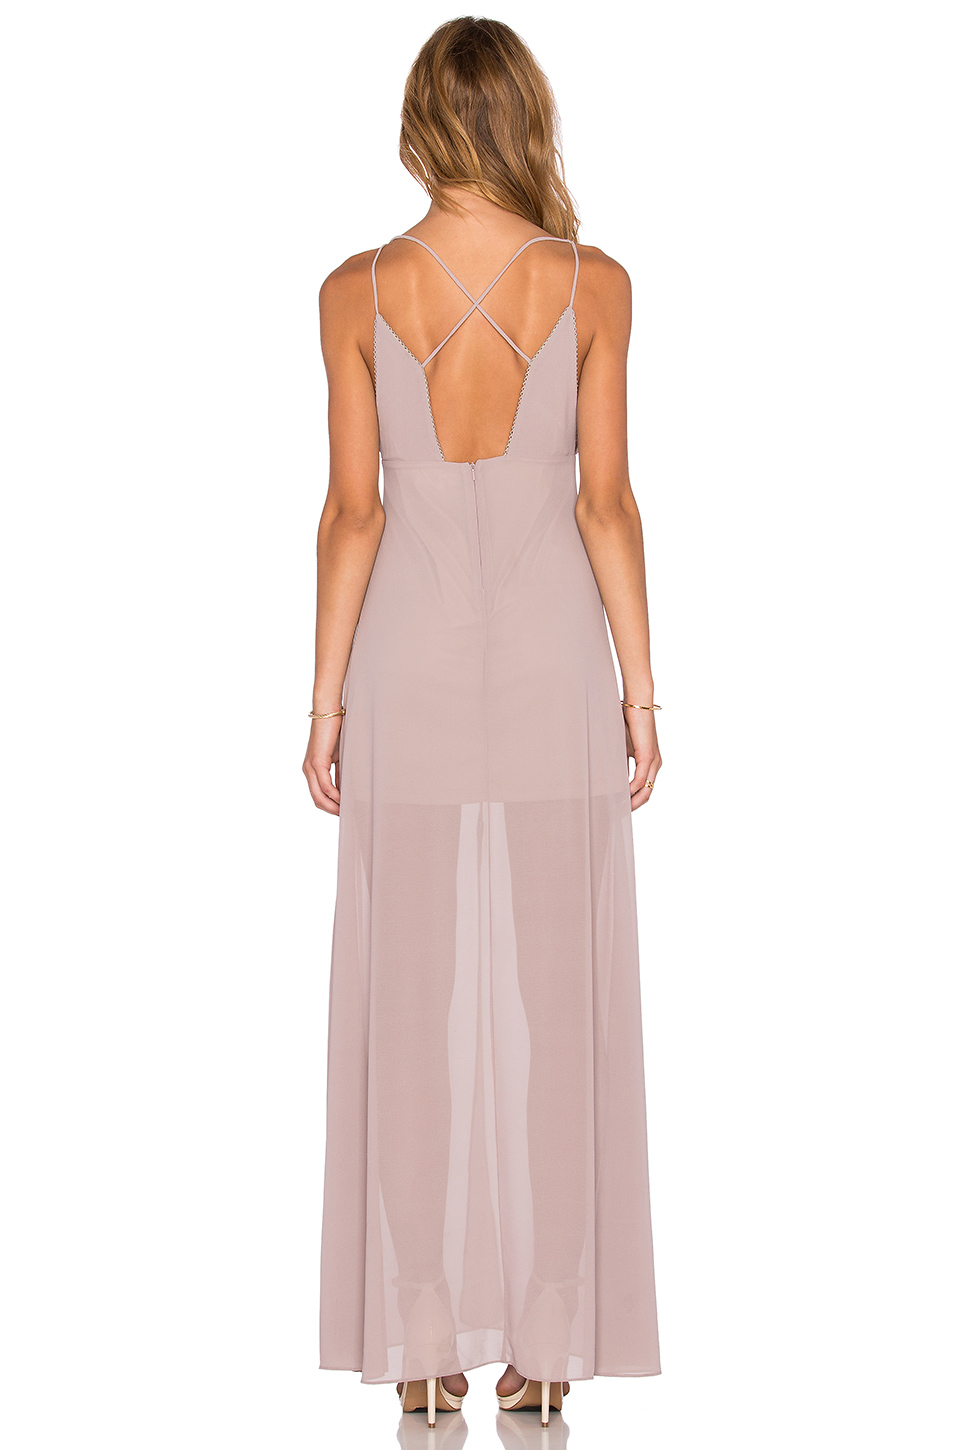 Lyst - Wyldr Stay With Me Plunge Maxi Dress in Pink 23ad60144